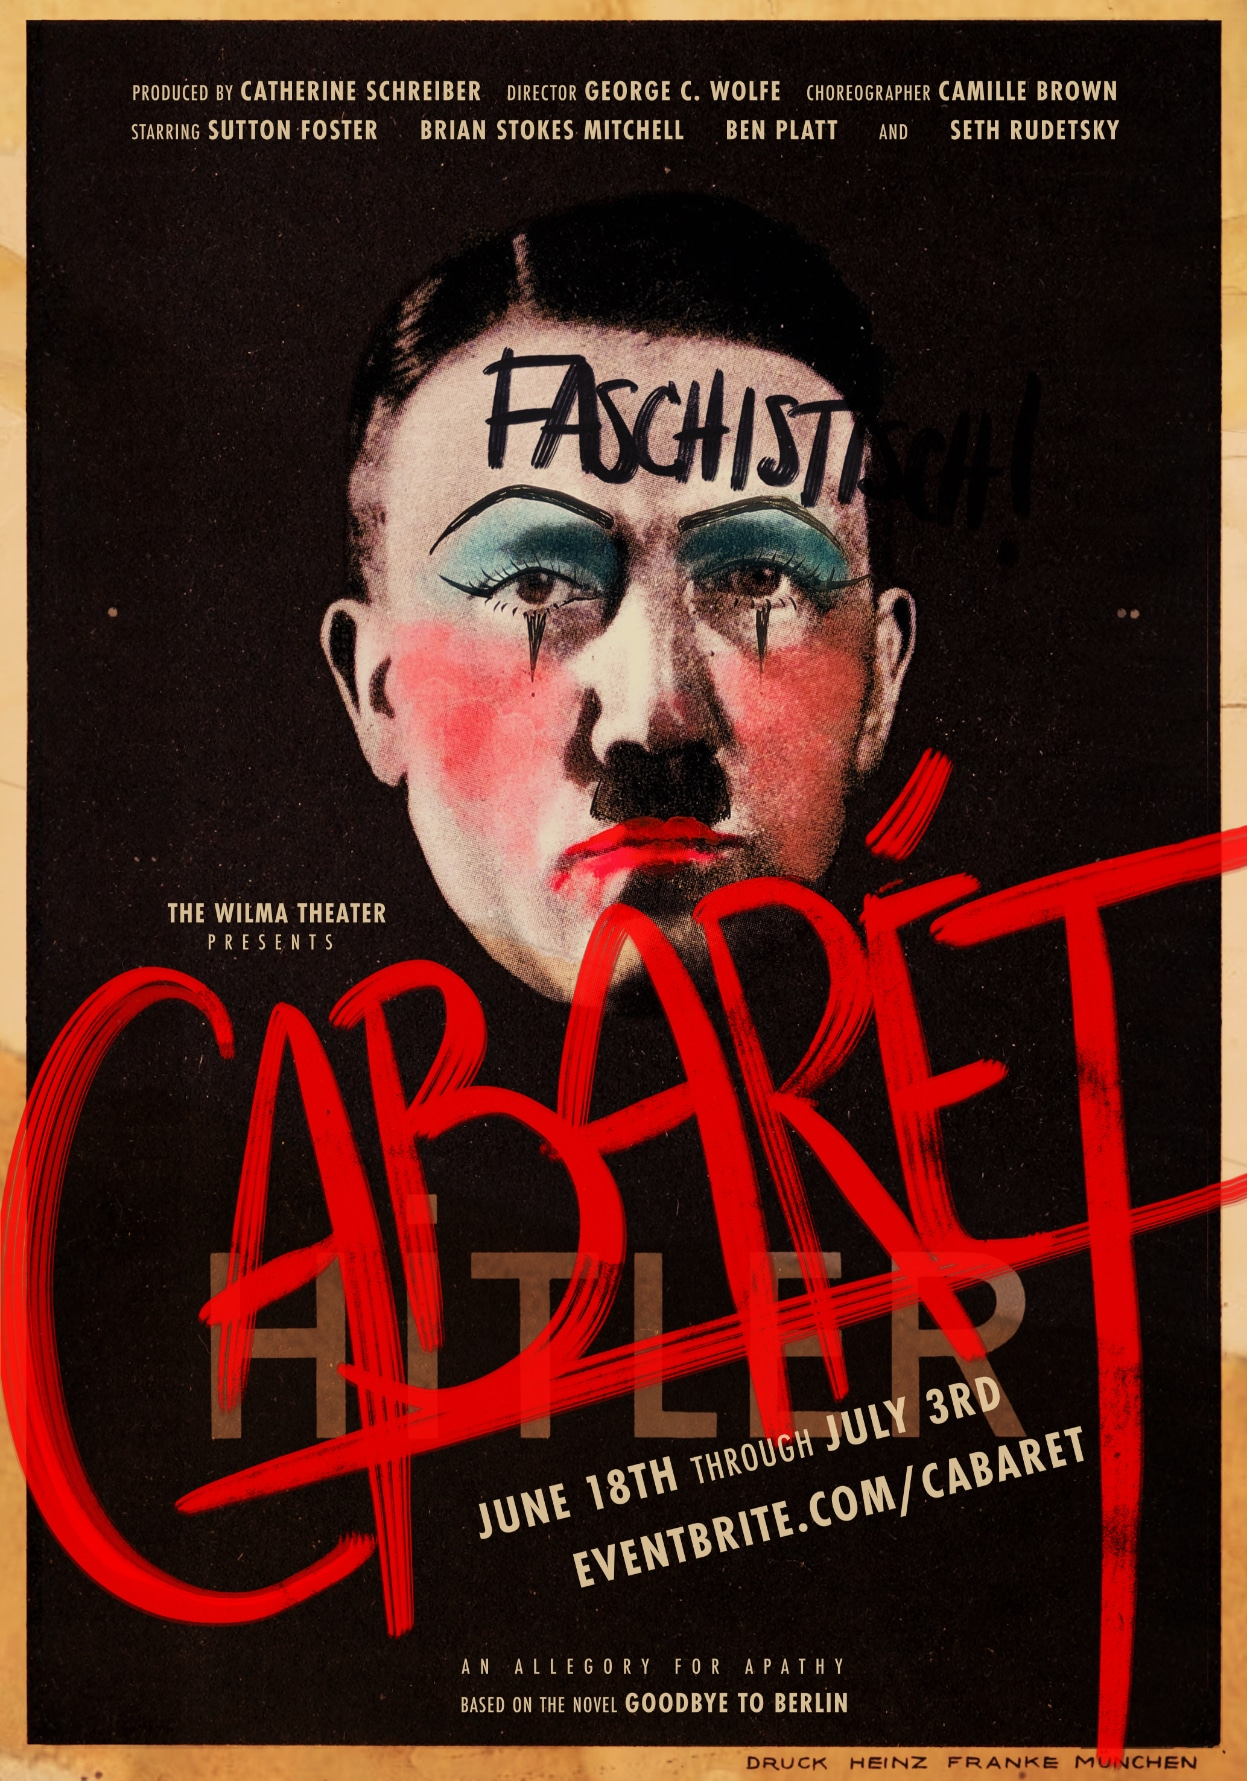 A Cabaret poster created by defacing a Hitler poster